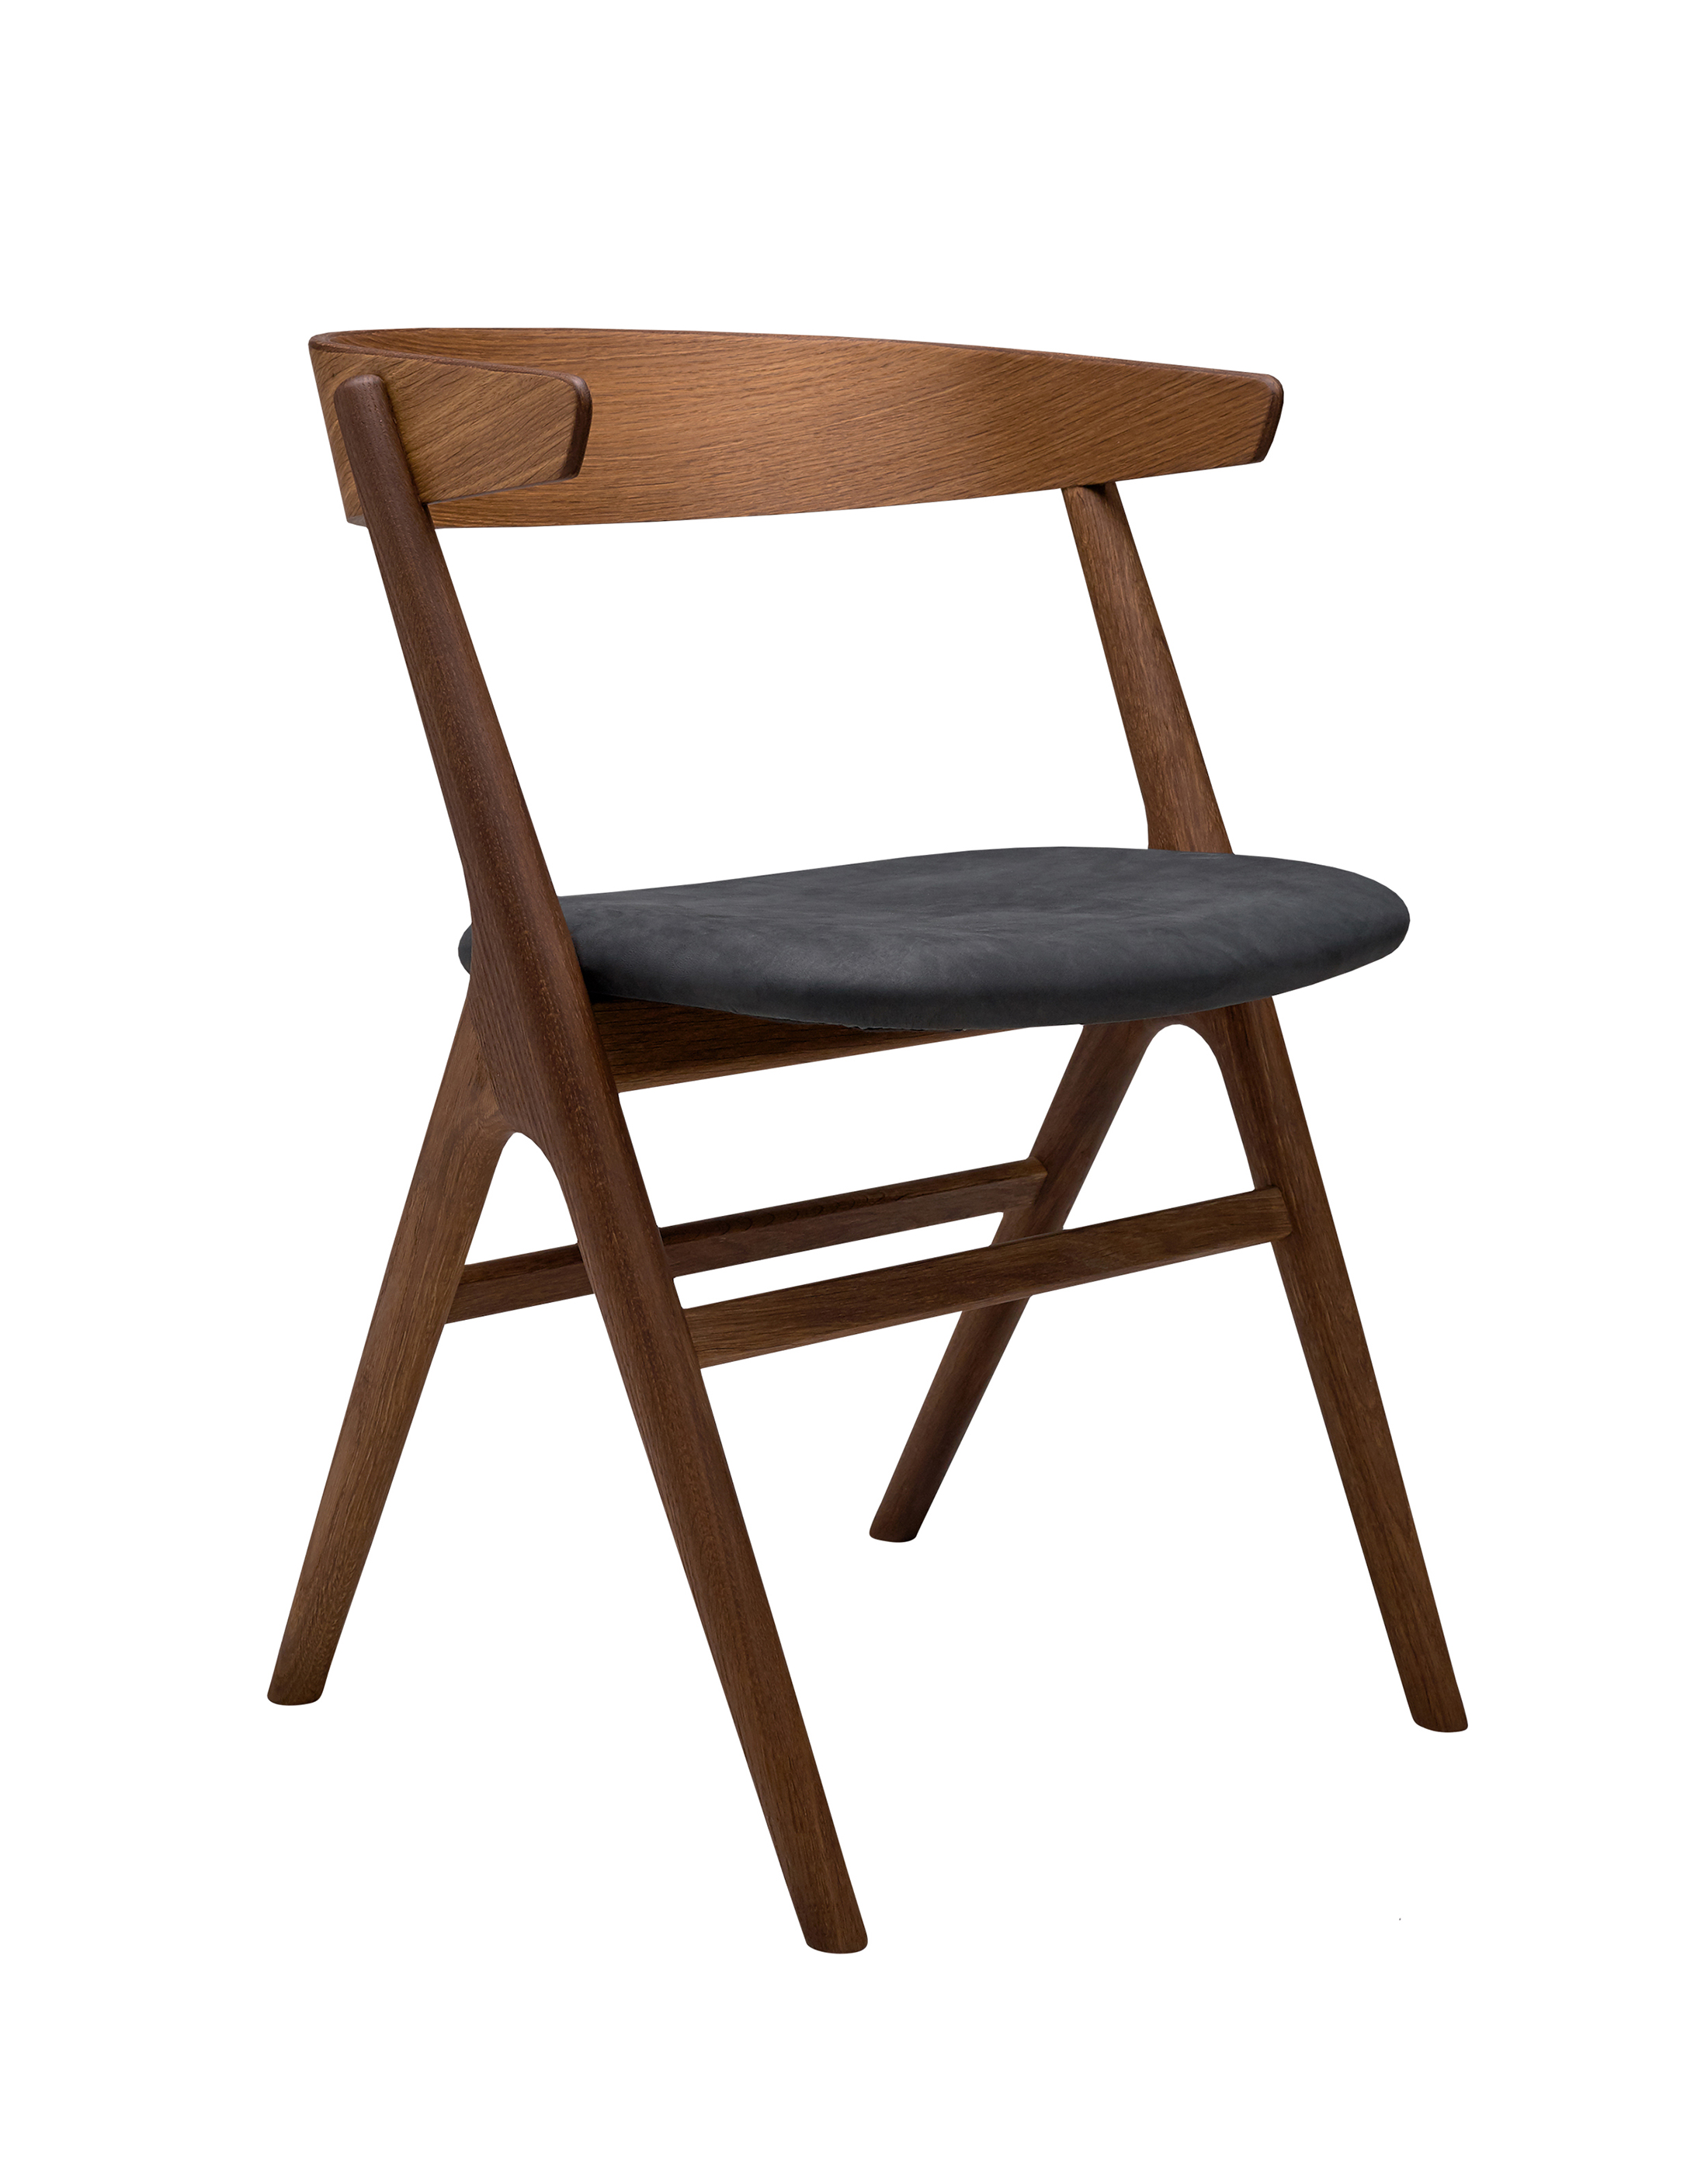 No 9 dining chair by Sibast